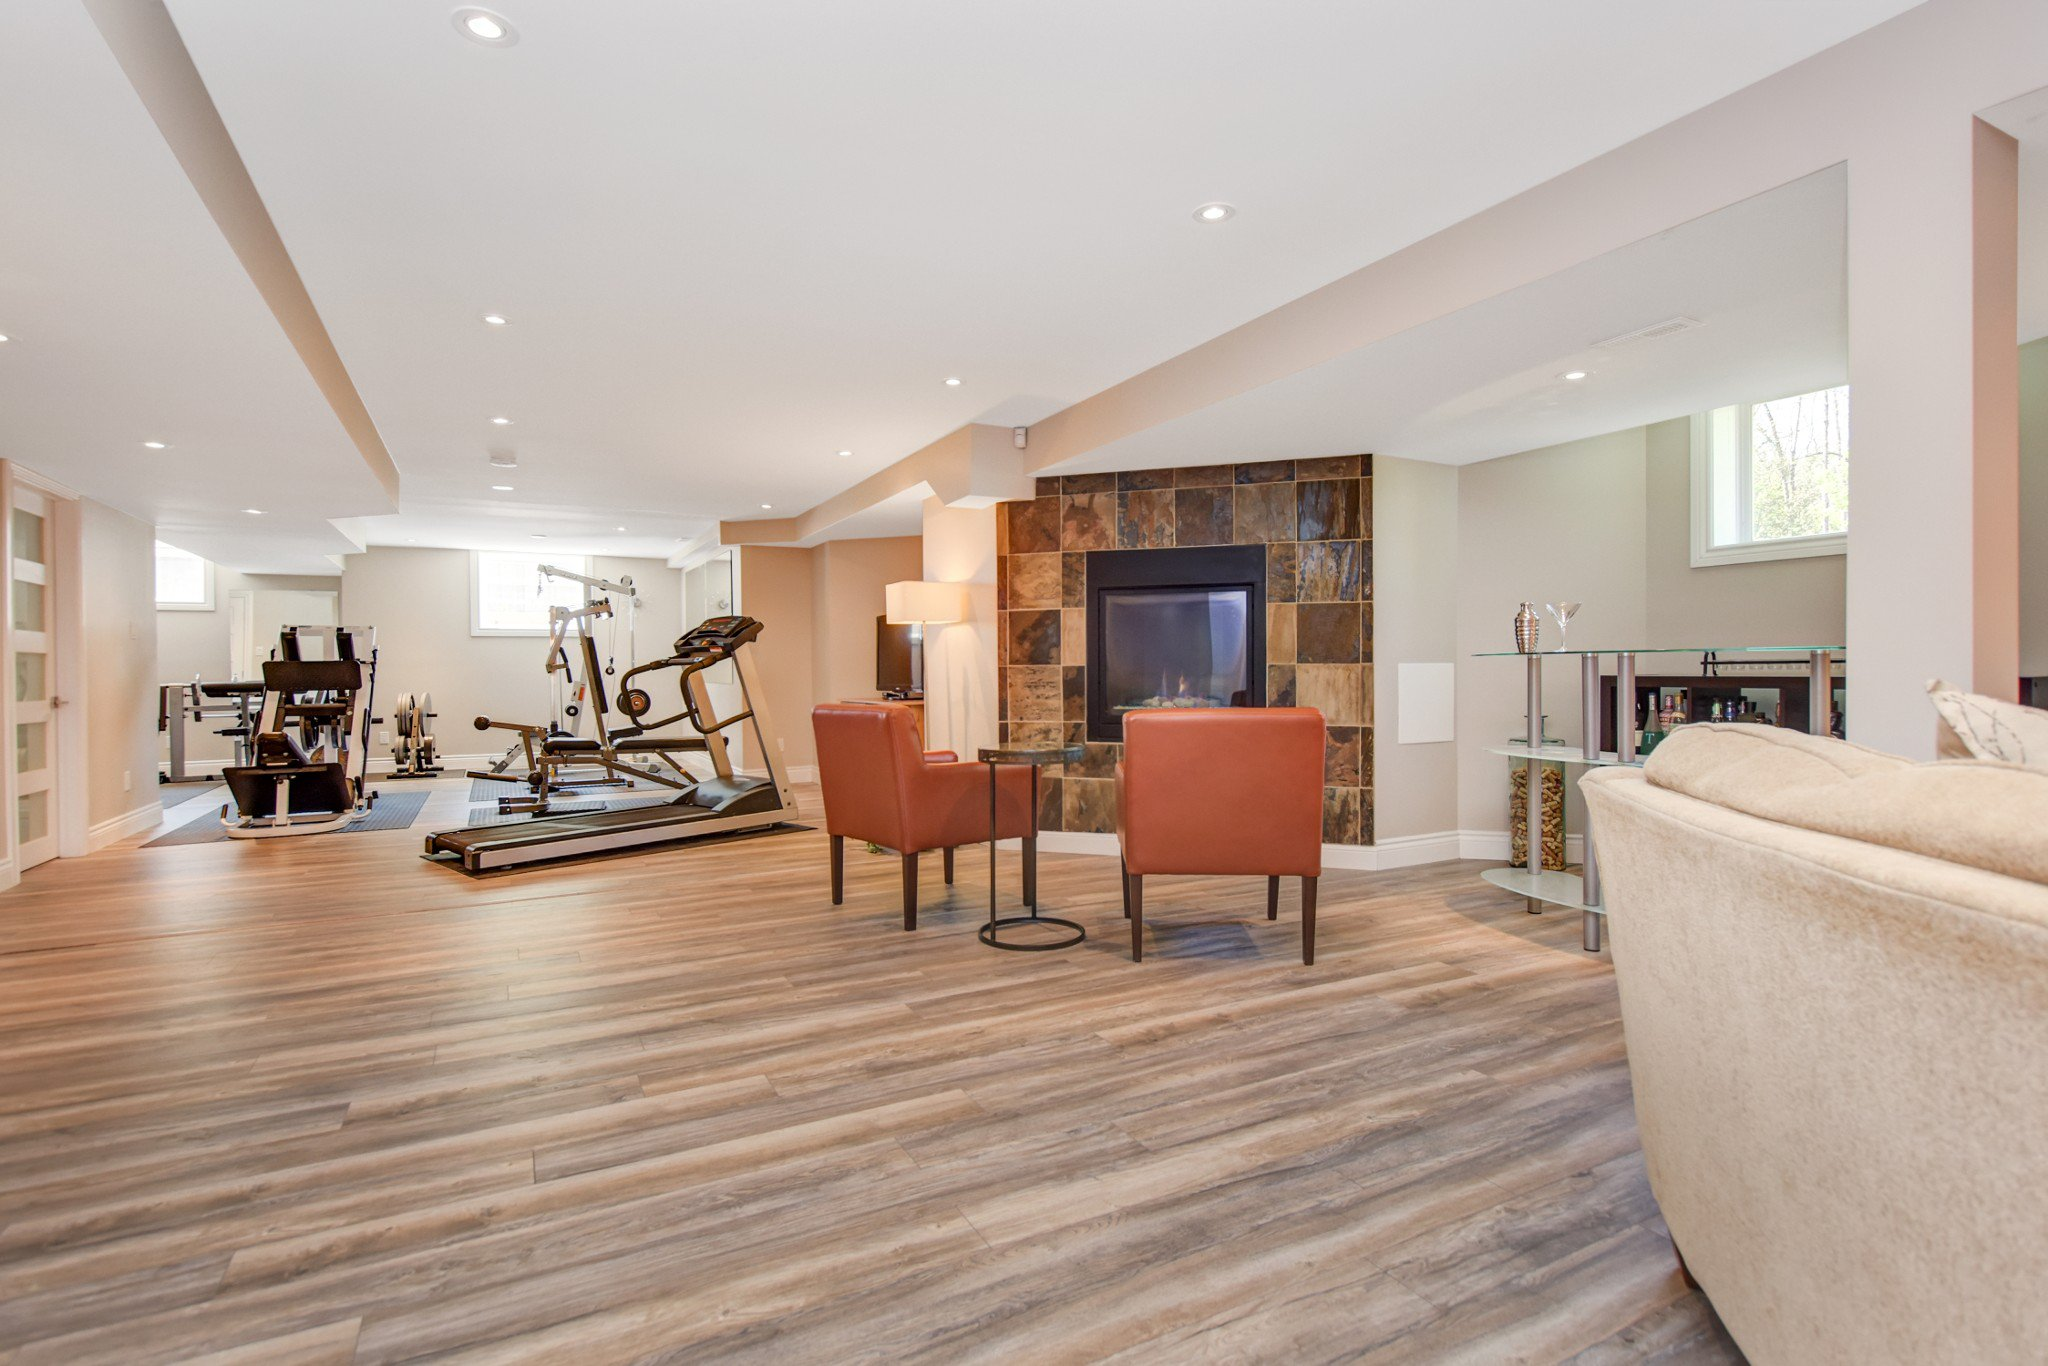 Photo 53: Photos: 1490 REINDEER WAY.: Greely House for sale (Ottawa)  : MLS®# 1109530